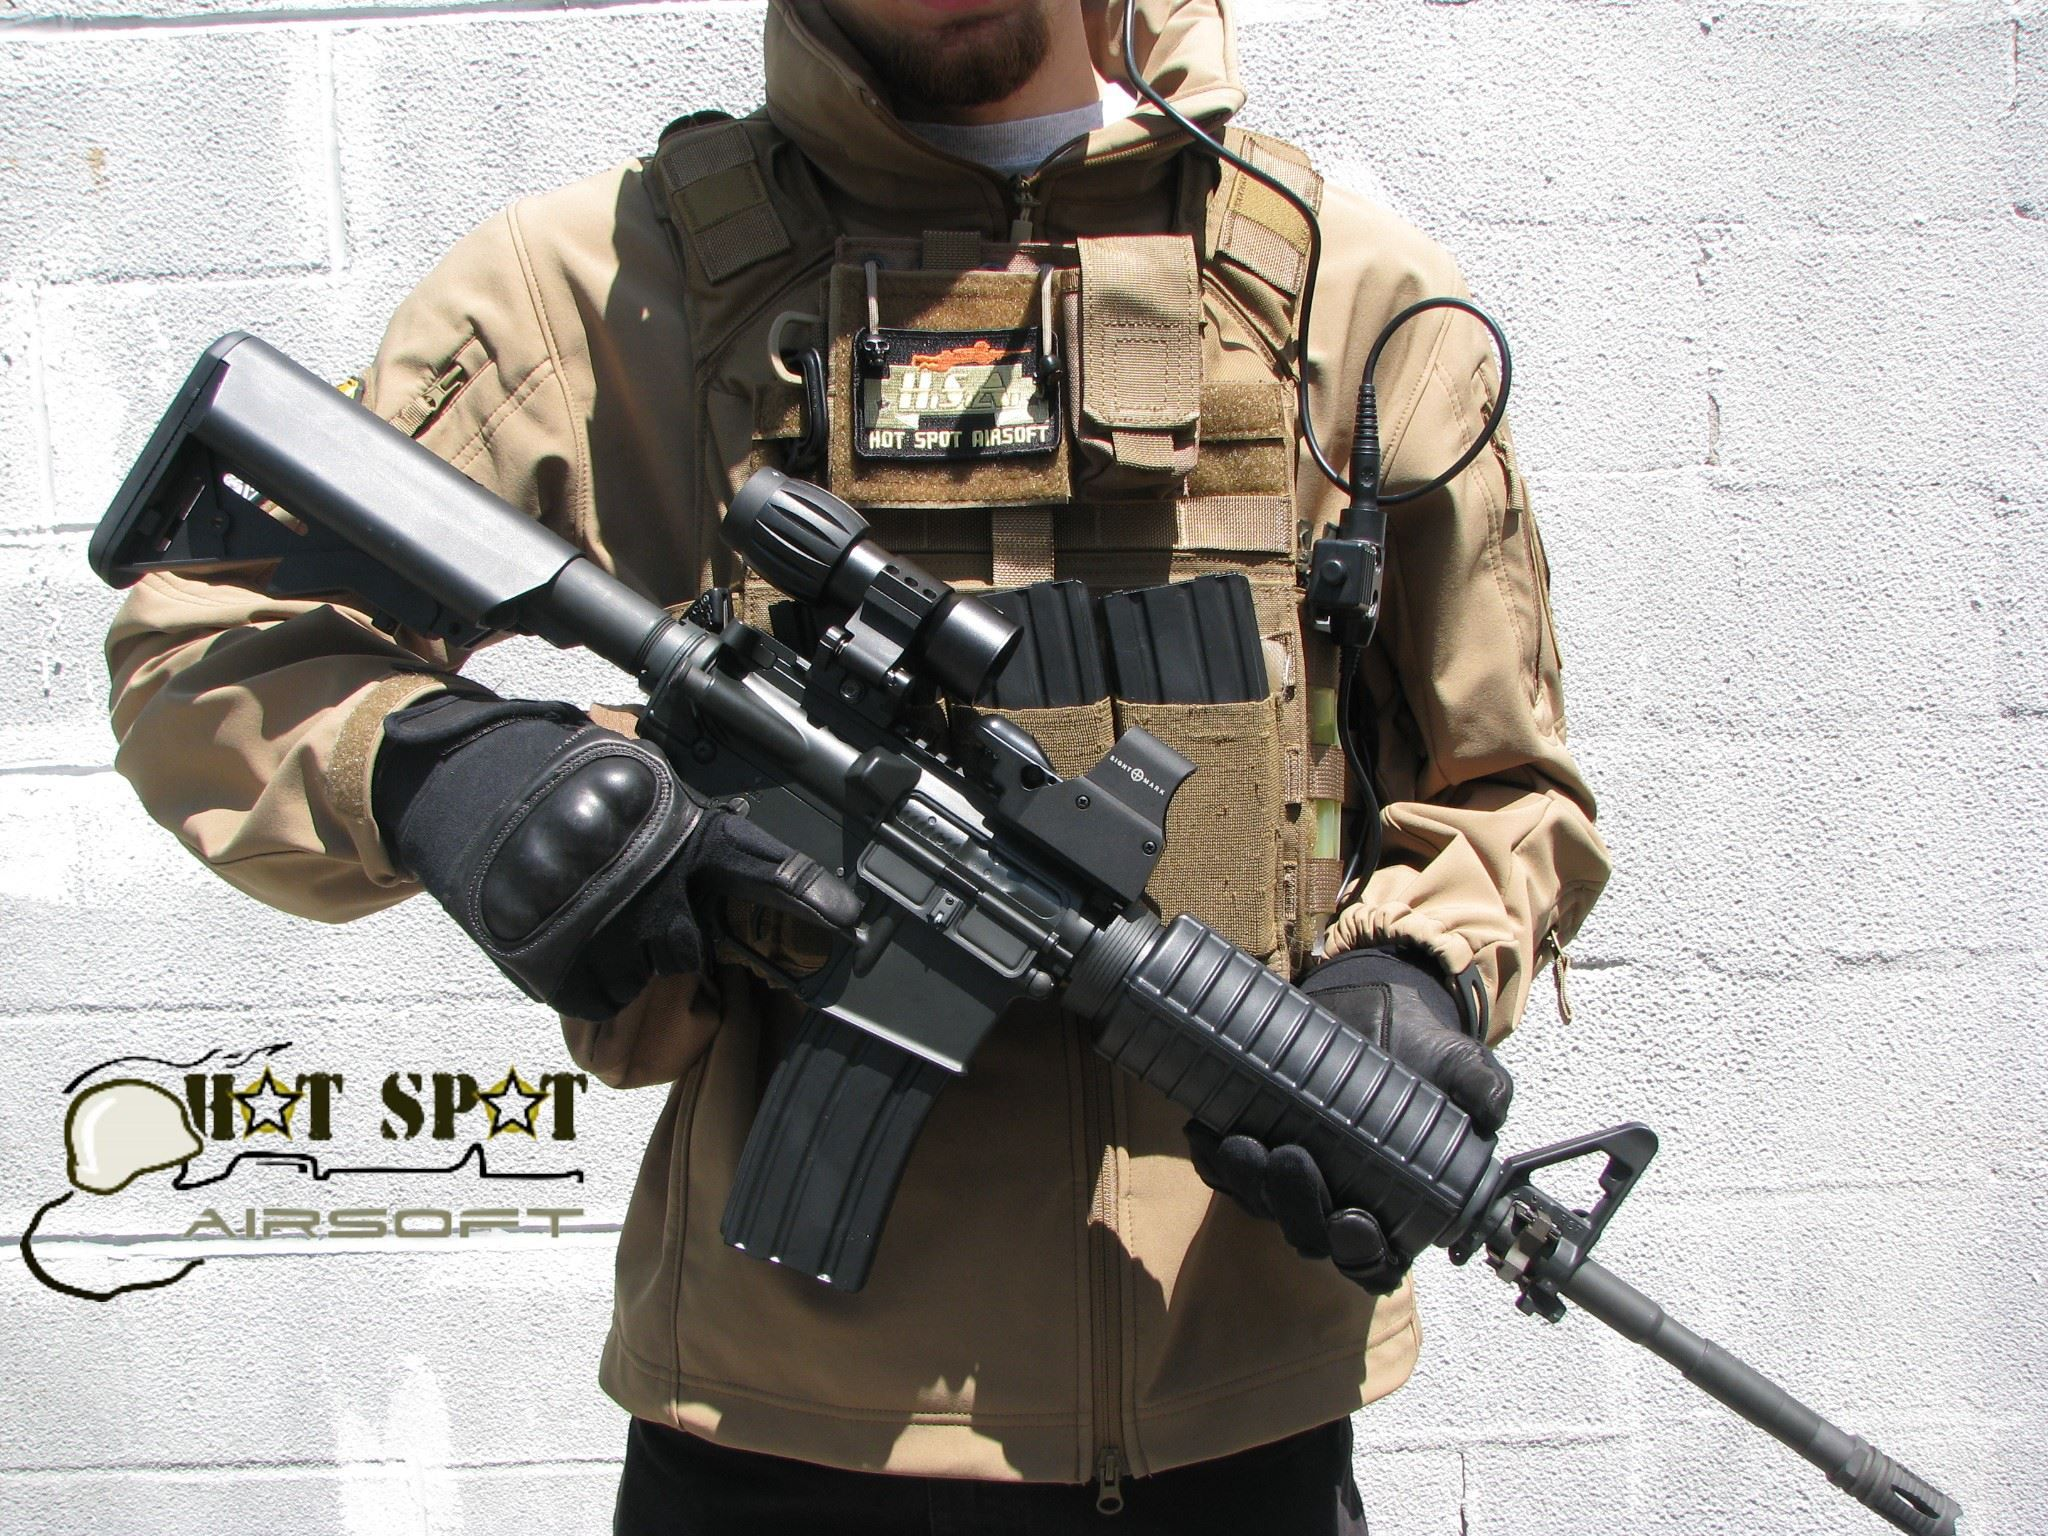 Airsoft Loadout | Army | Pinterest